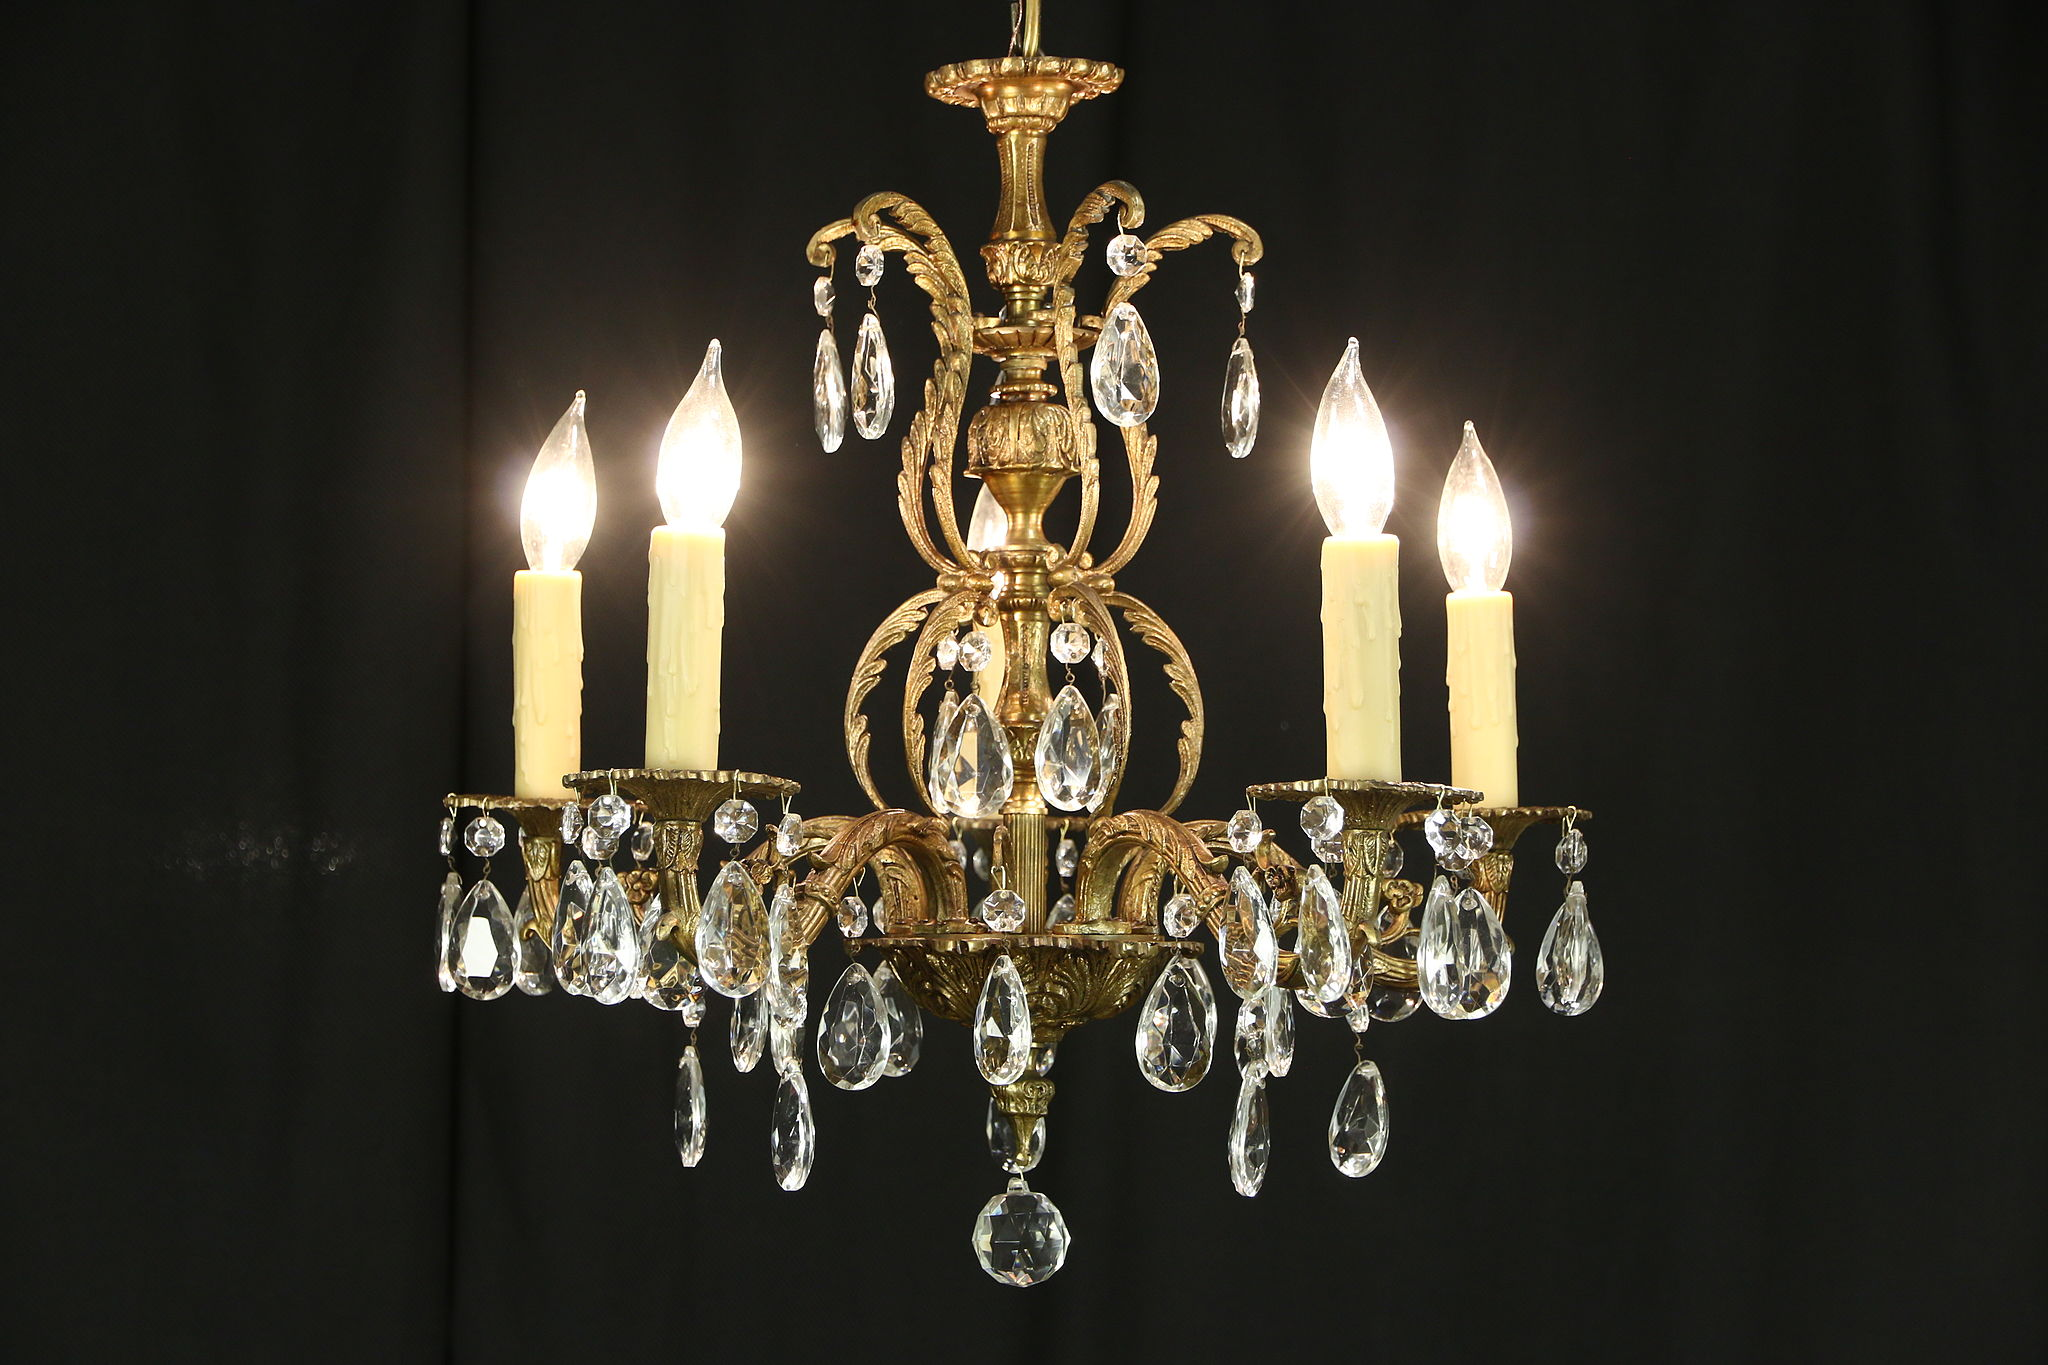 Sold Chandelier With 5 Candles Vintage Embossed Bronze